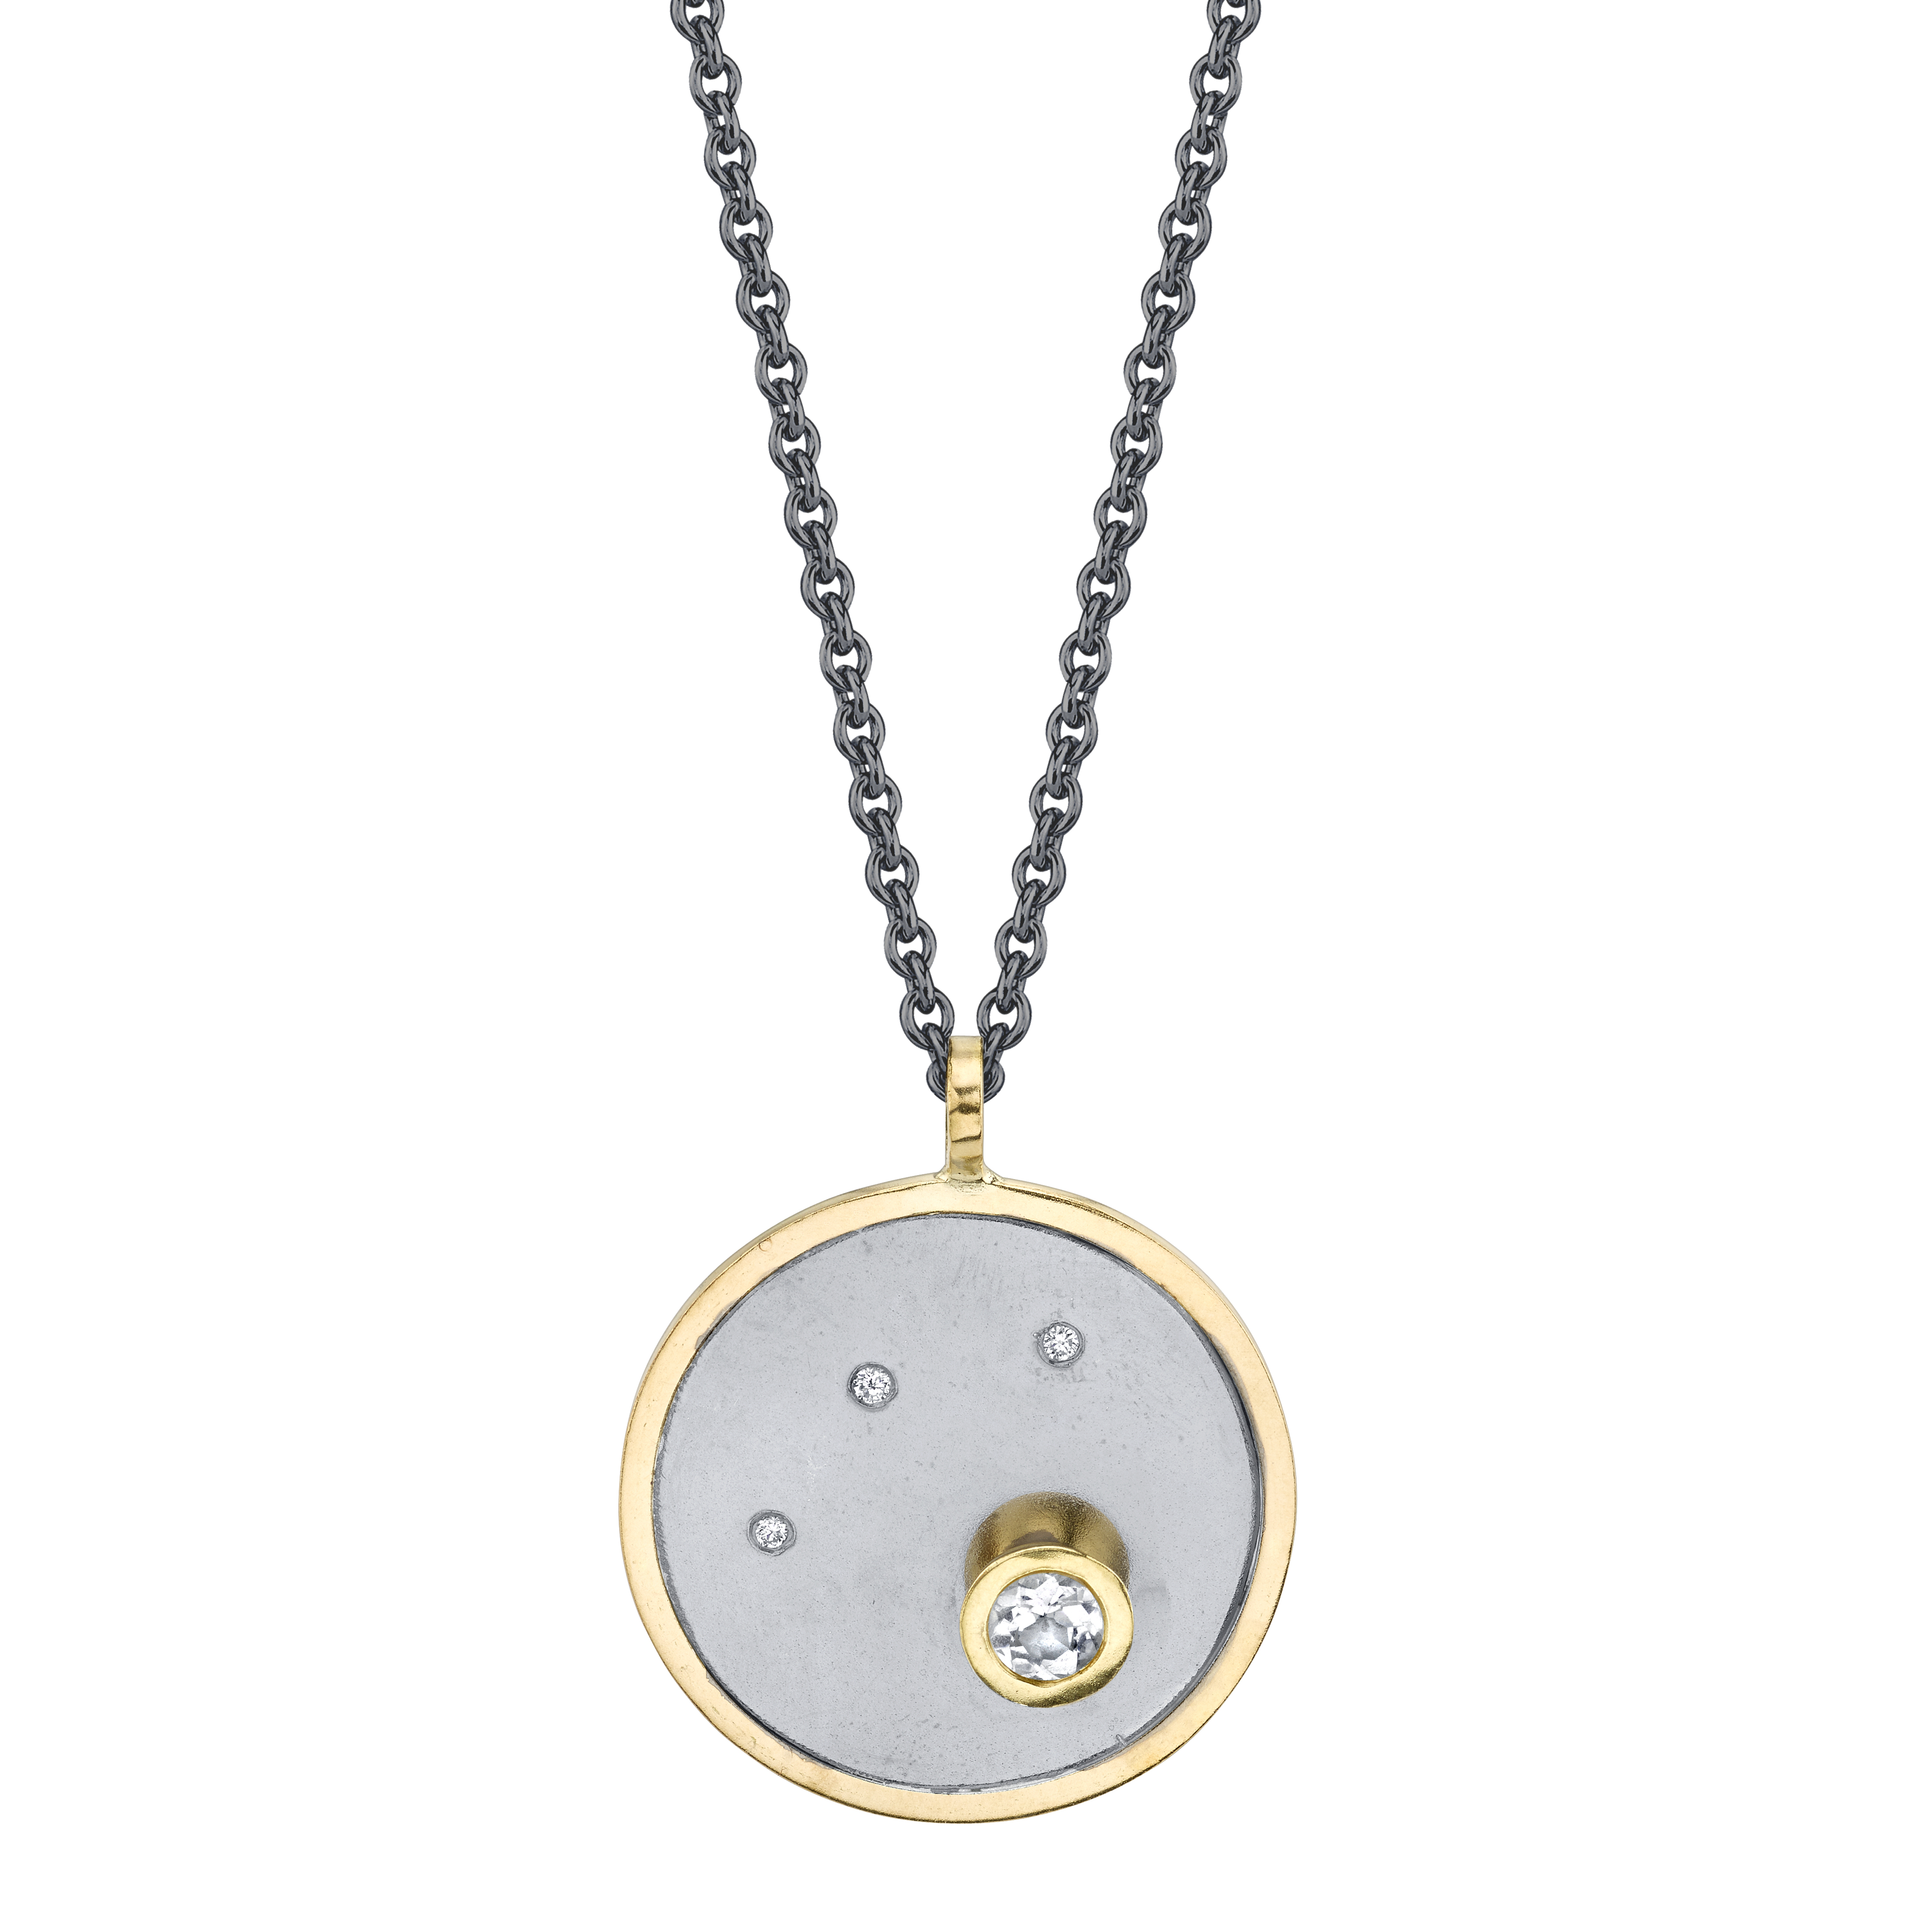 Denise James Constellation pendant | JCK On Your Market